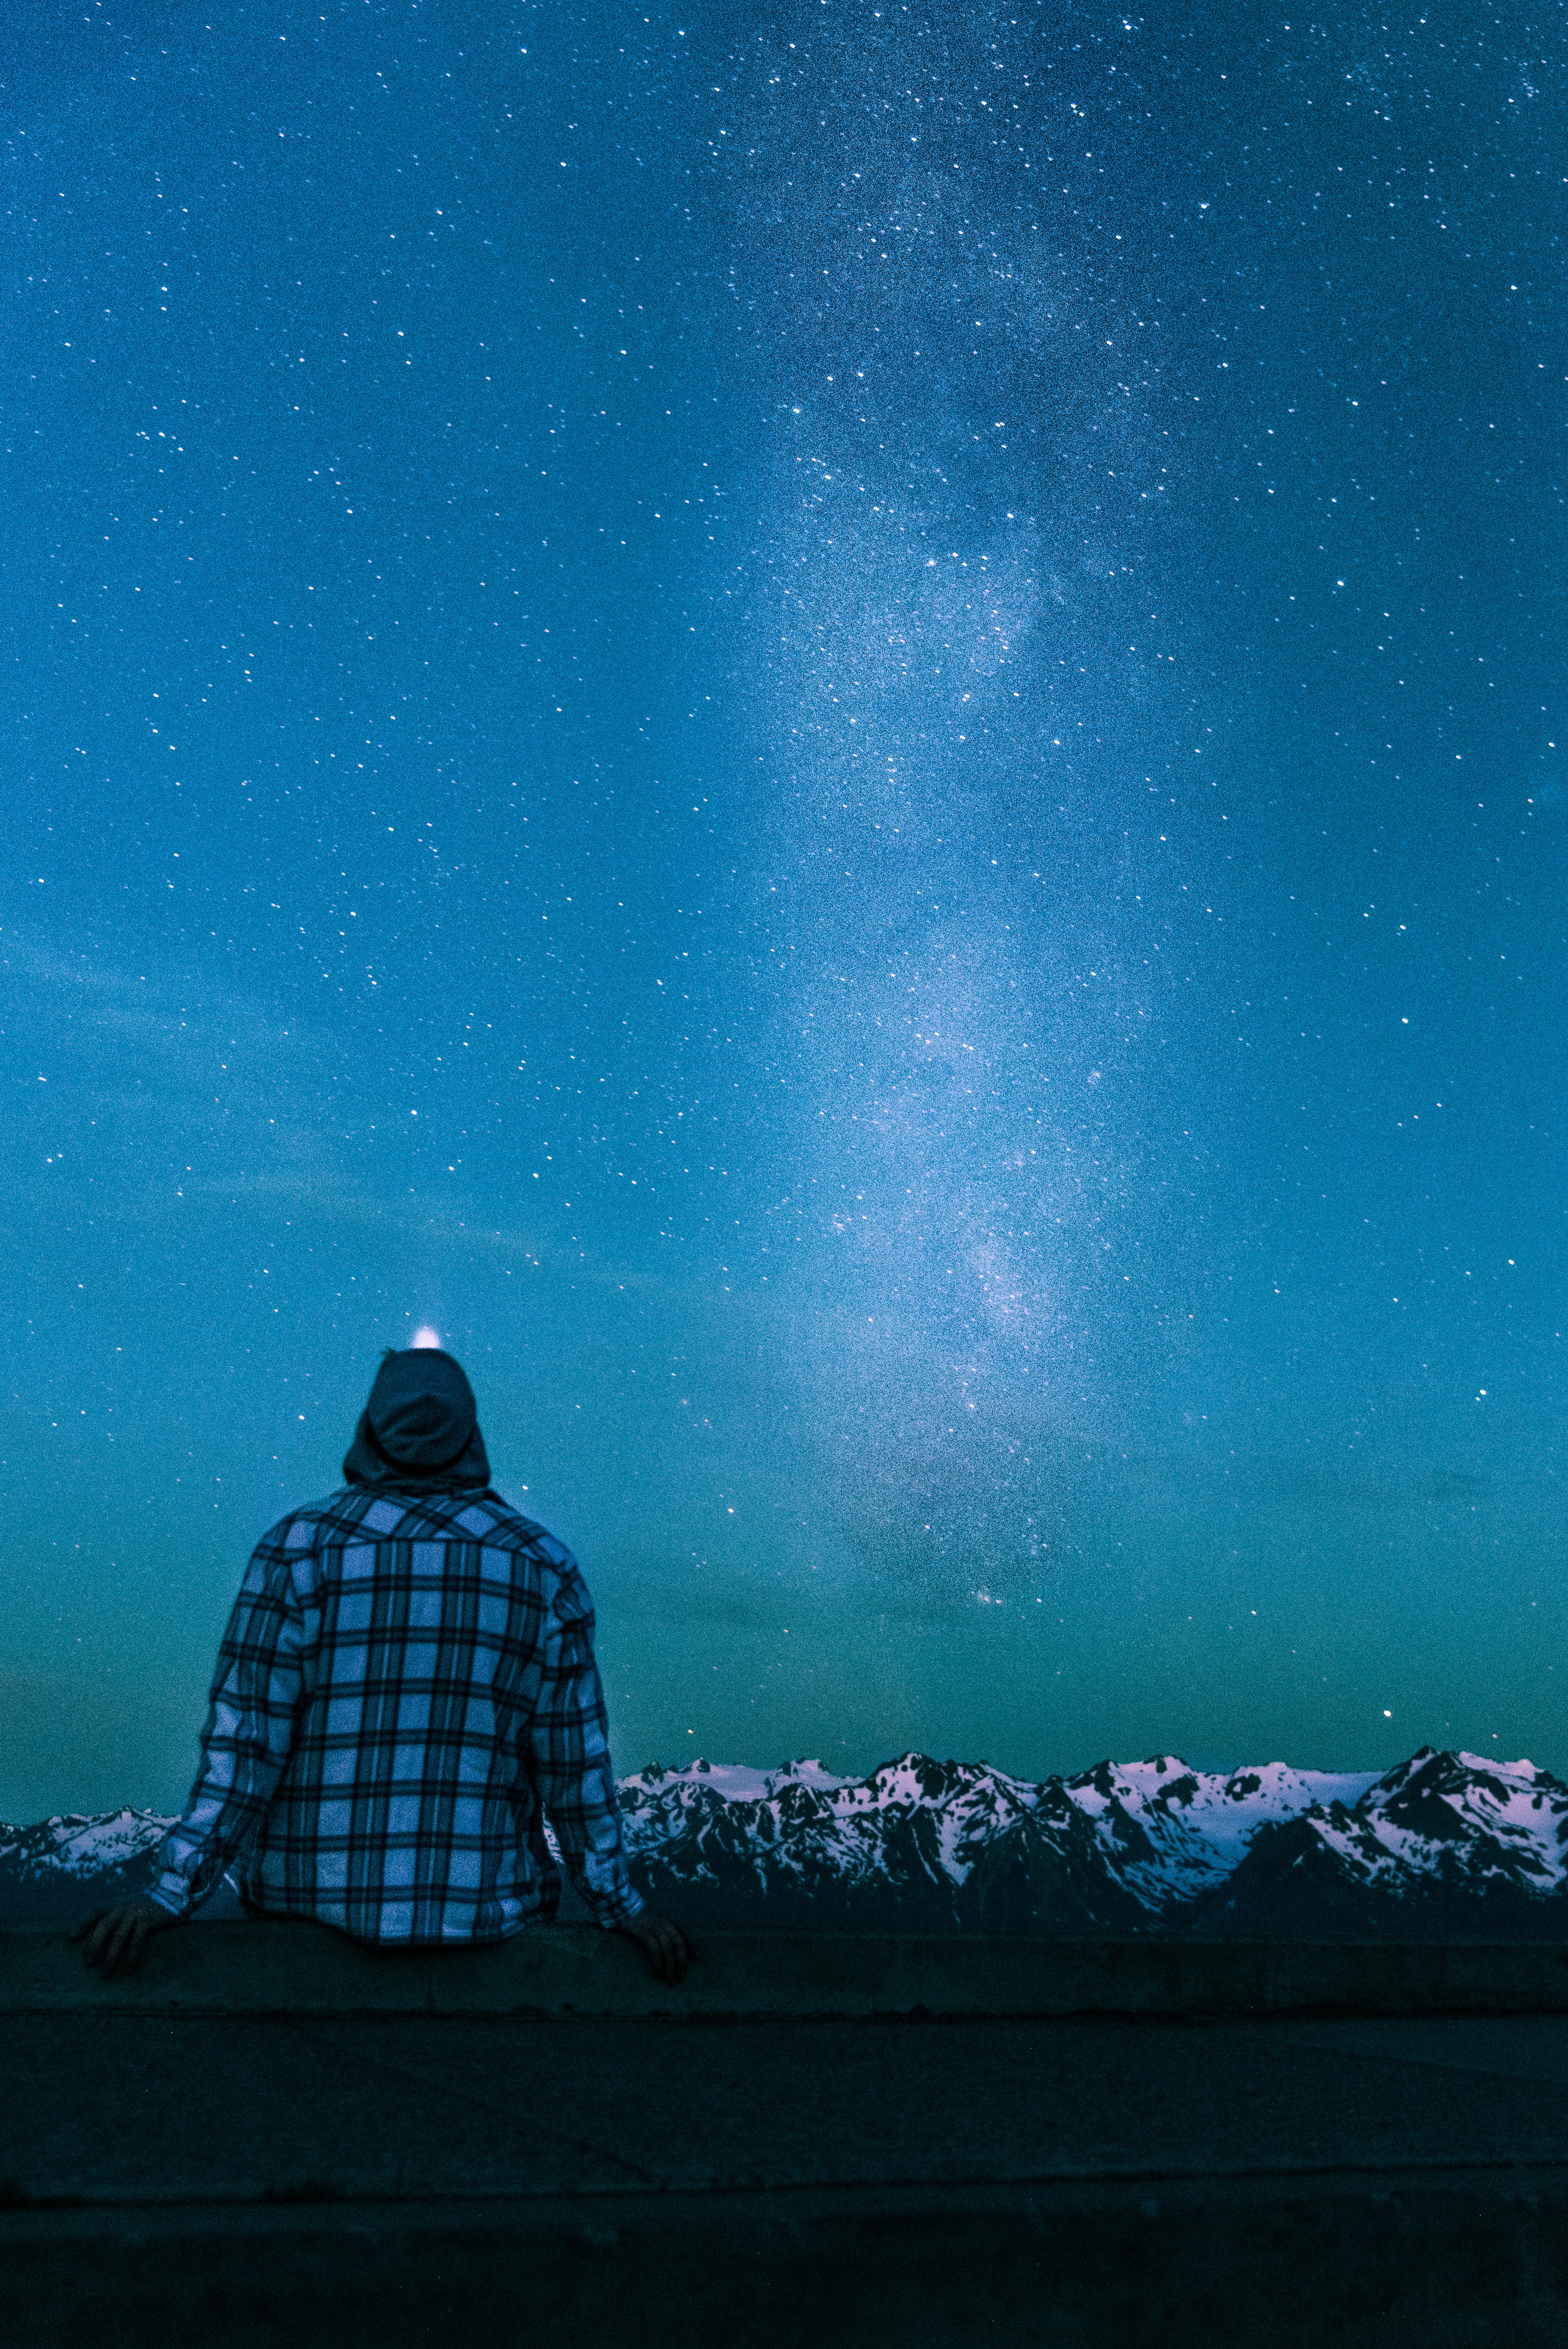 Star Gazing Pictures | Download Free Images on Unsplash